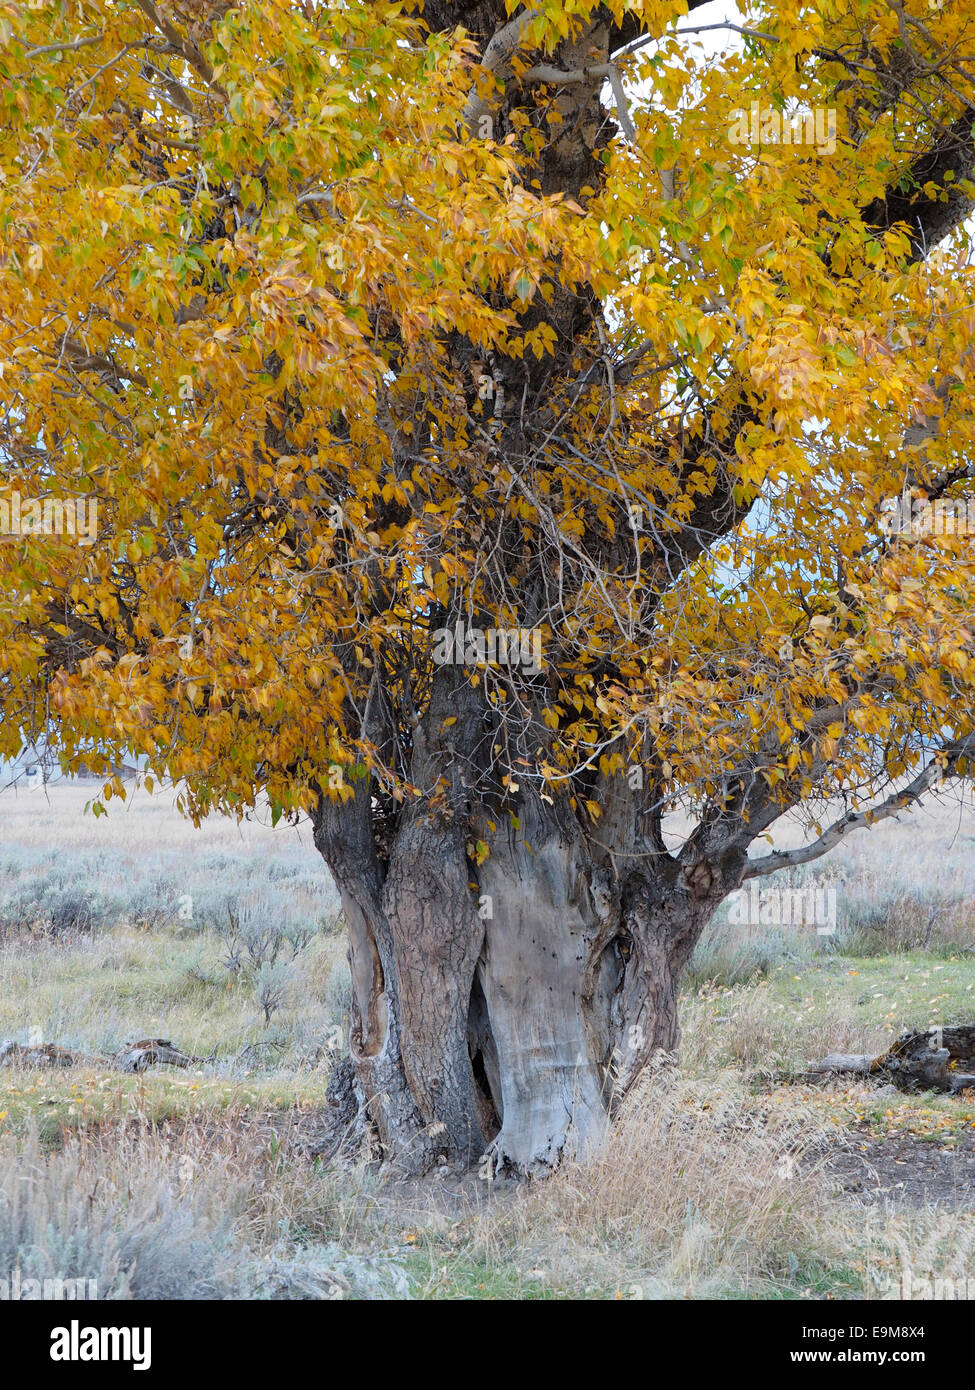 Old Cottonwood Tree with Gnarled Trunk Fall Color - Stock Image